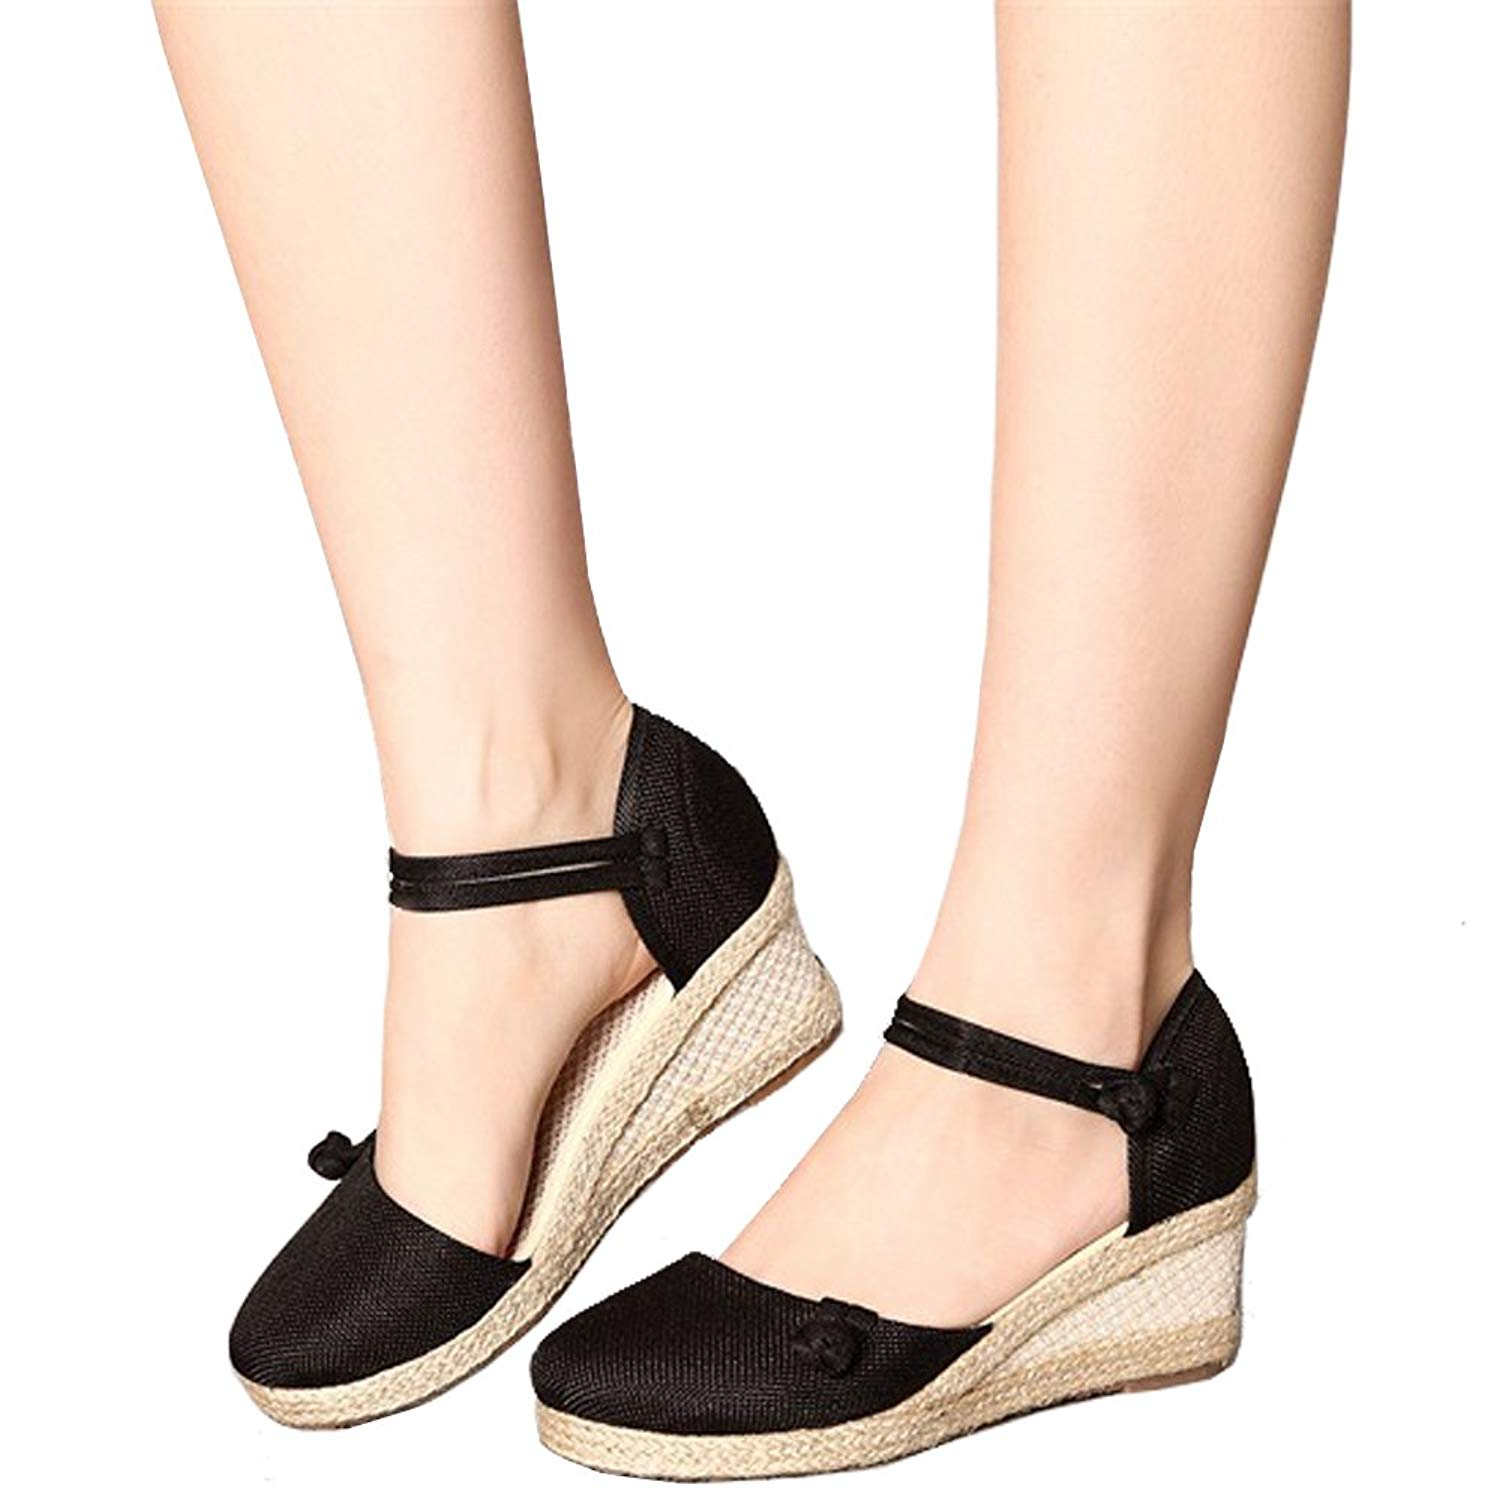 81ad6b3d0a6 Get Quotations · Yu He Women s Casual Wedge Sandals Shoes Ankle Strap  Closed Toe Espadrille Platform Wedge